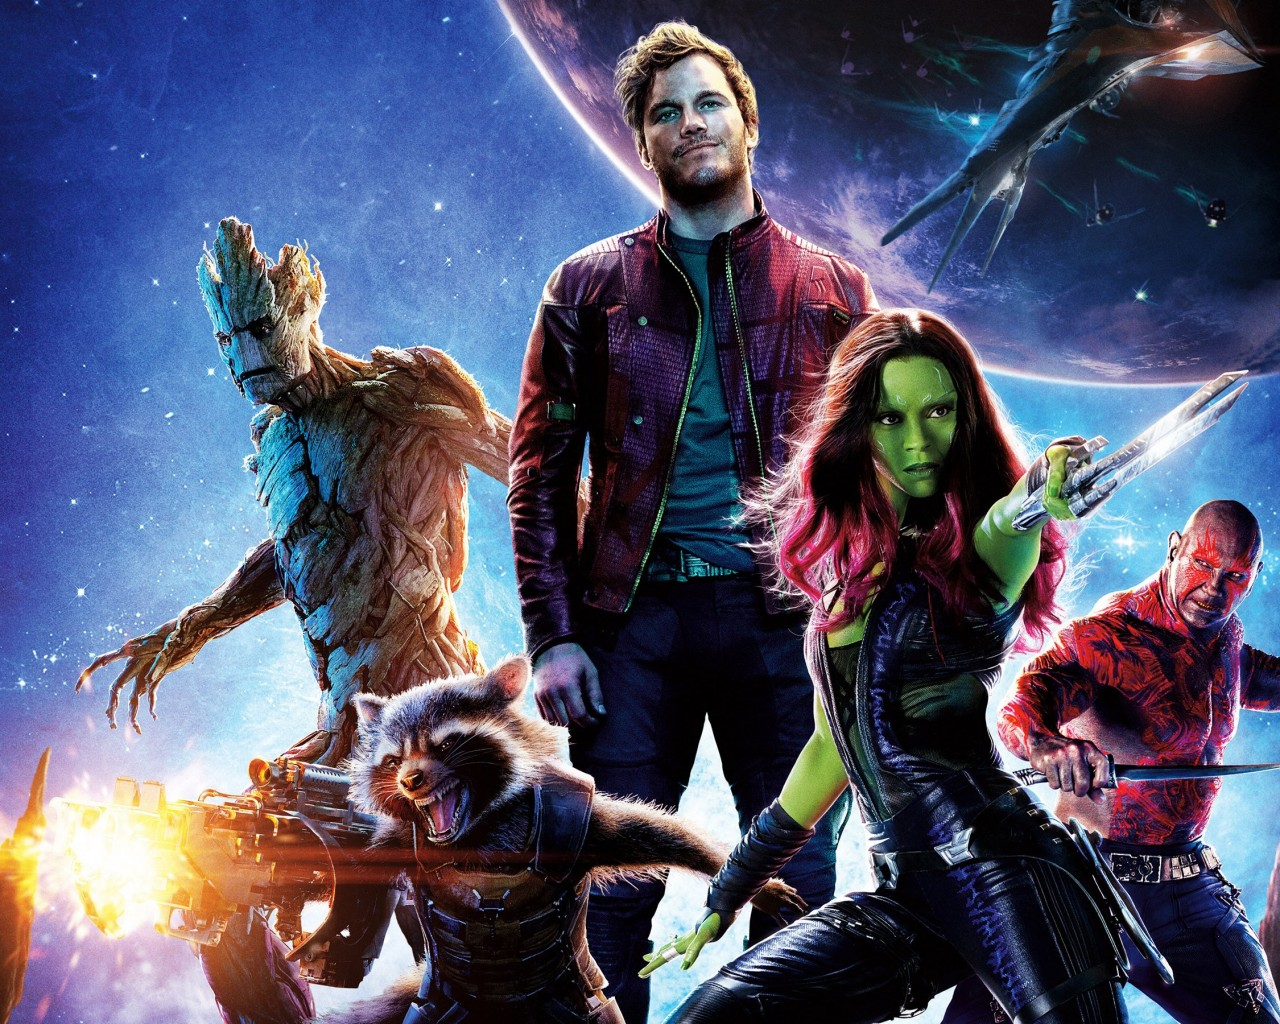 Guardians of the Galaxy Wallpaper for Desktop 1280x1024